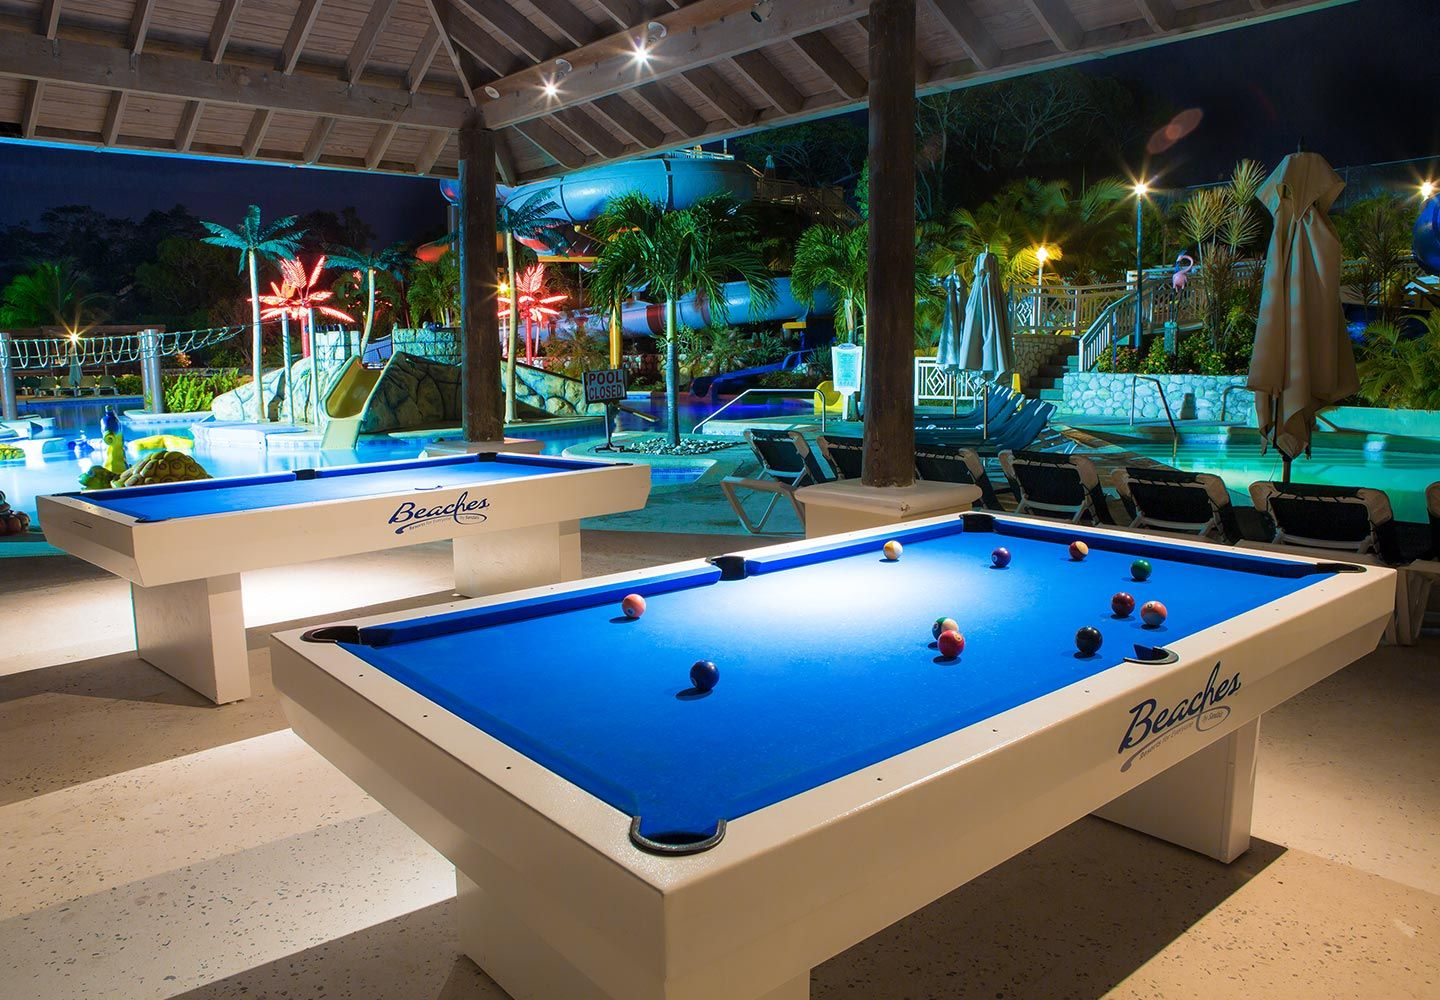 Pool Tables By The Pool The Fun Never Stops Beaches Resorts